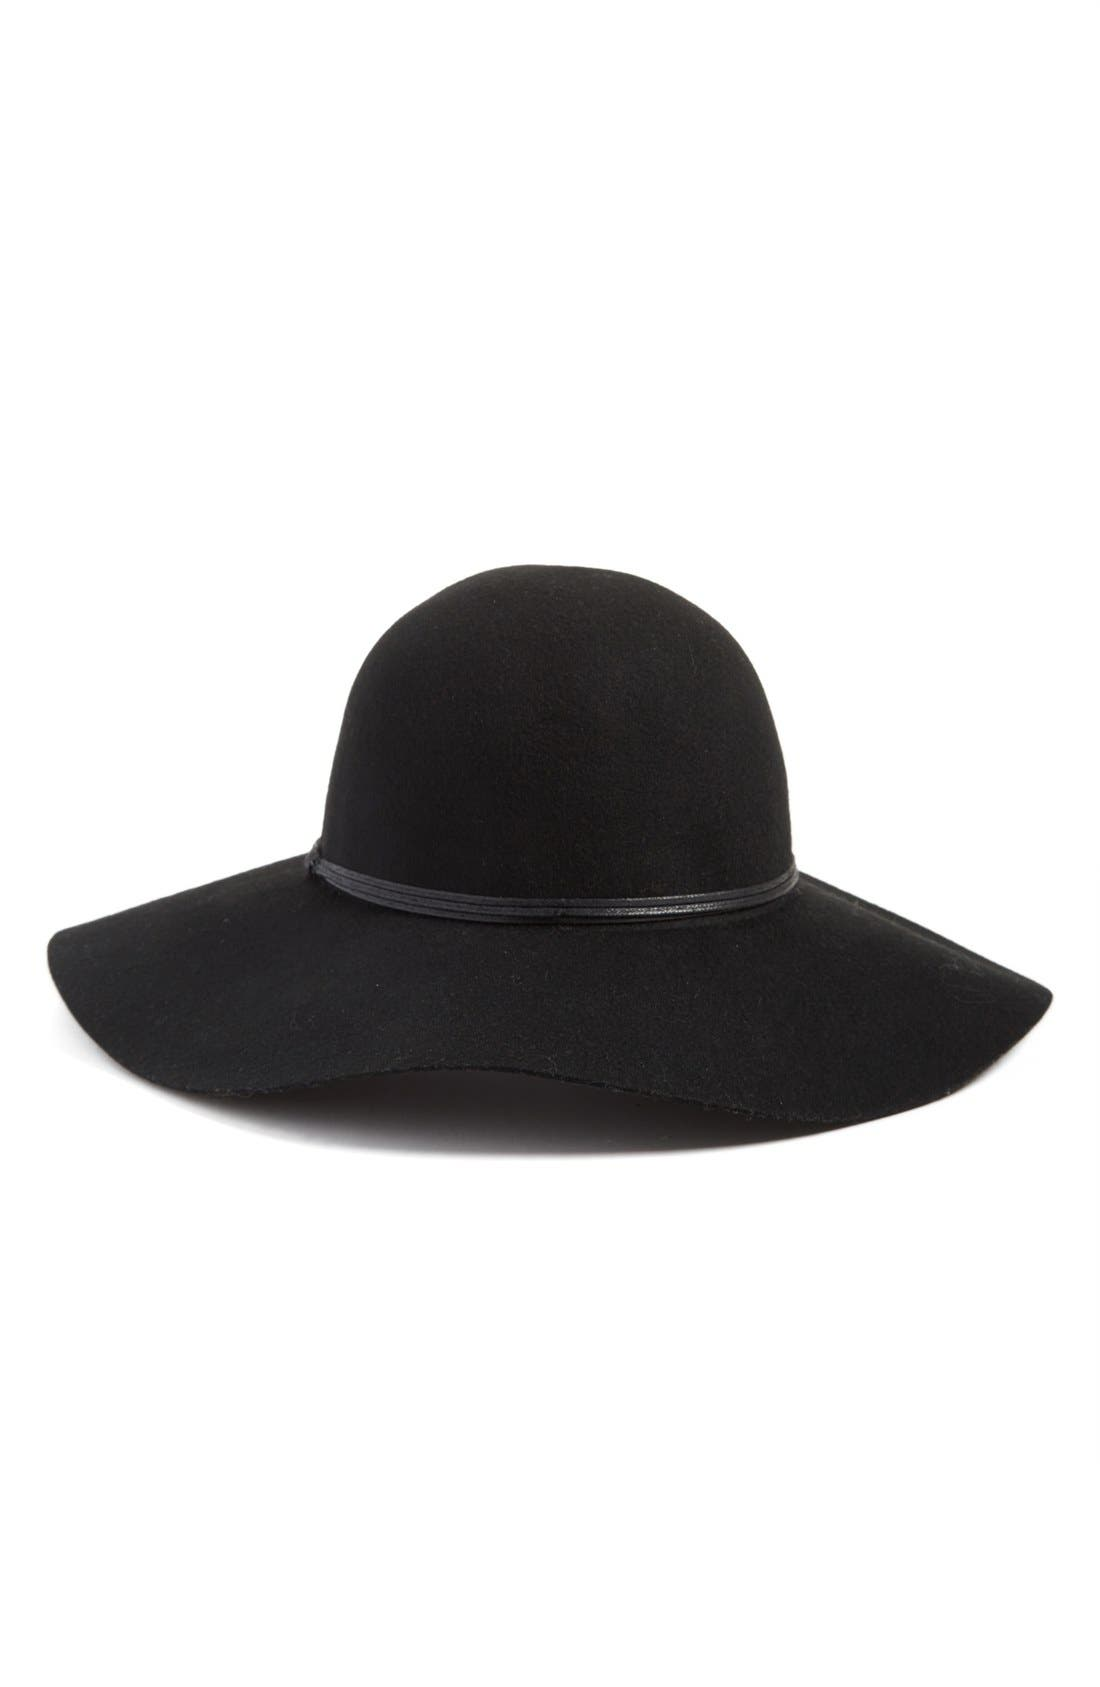 Floppy Wool Hat,                             Main thumbnail 1, color,                             Black